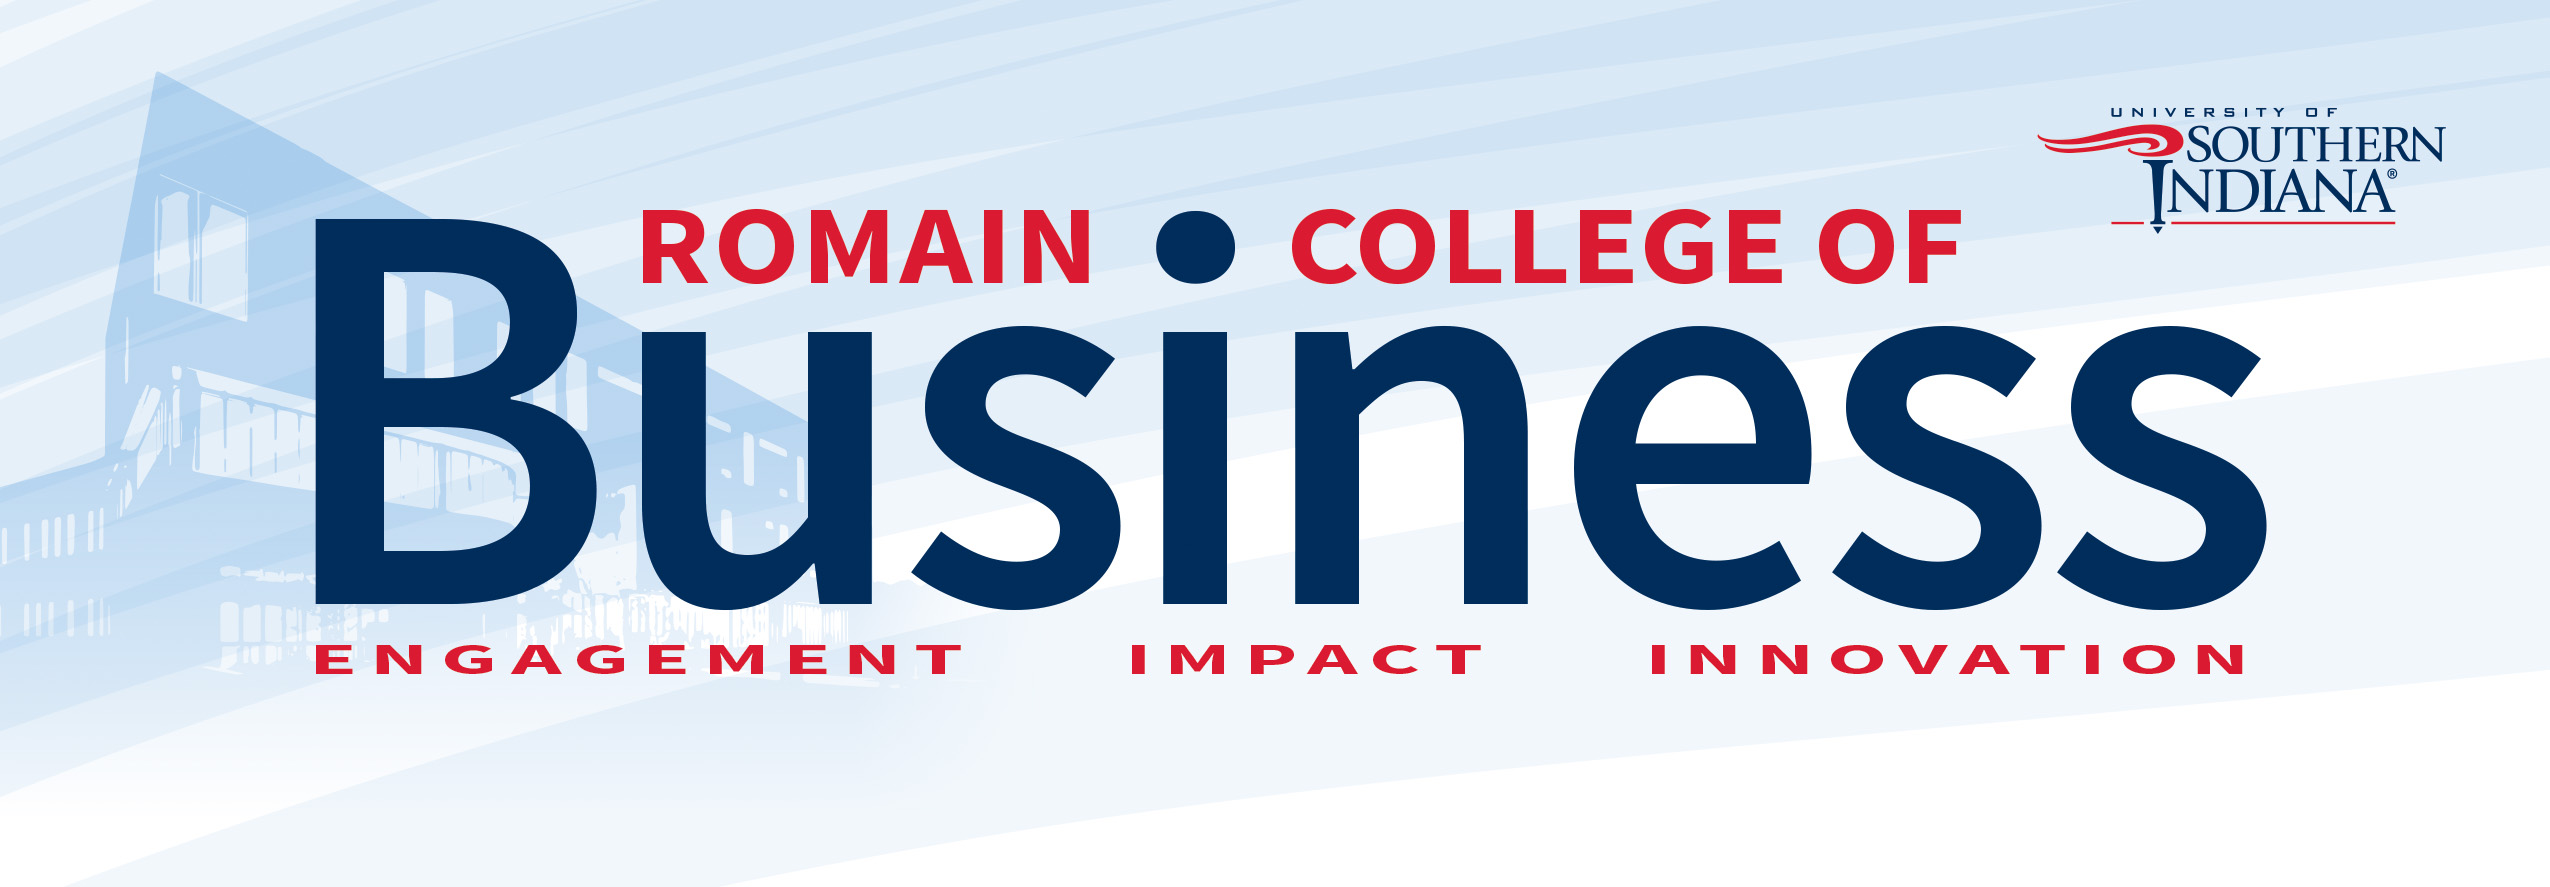 Romain College of Business newsletter banner wordmark